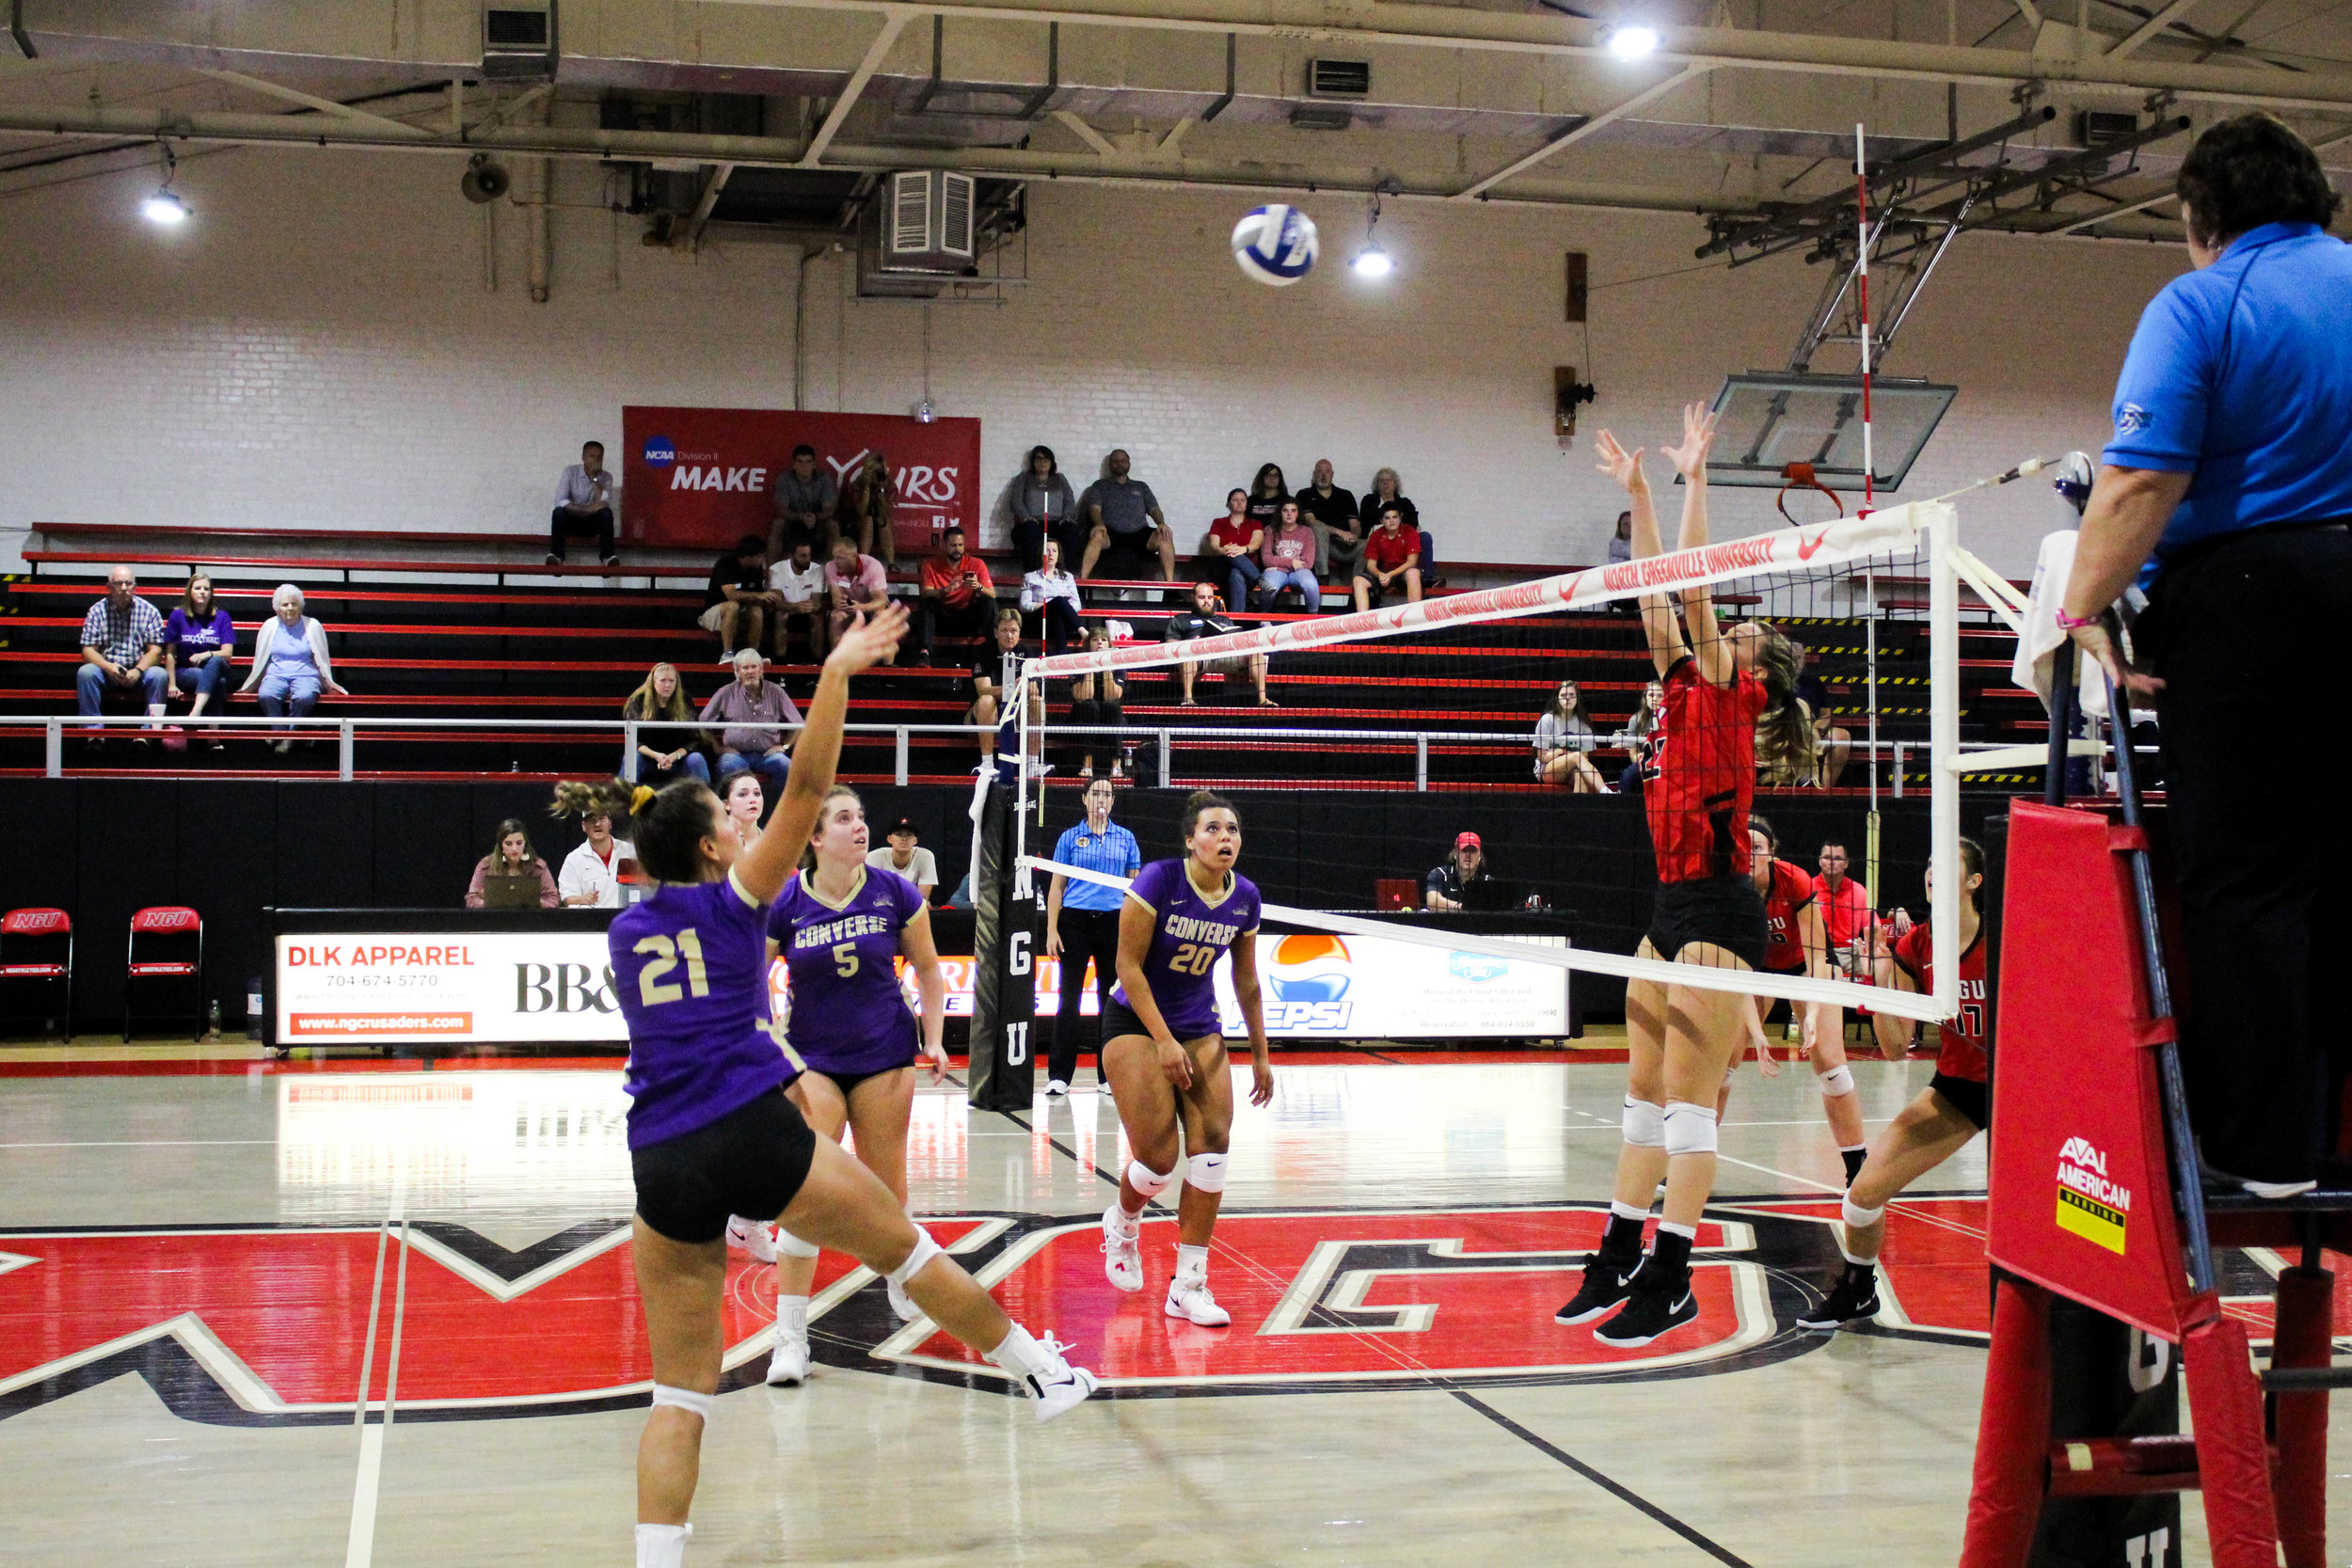 Senior, Courtney Williamson (22), jumps as she prepares to block a hit across the net.